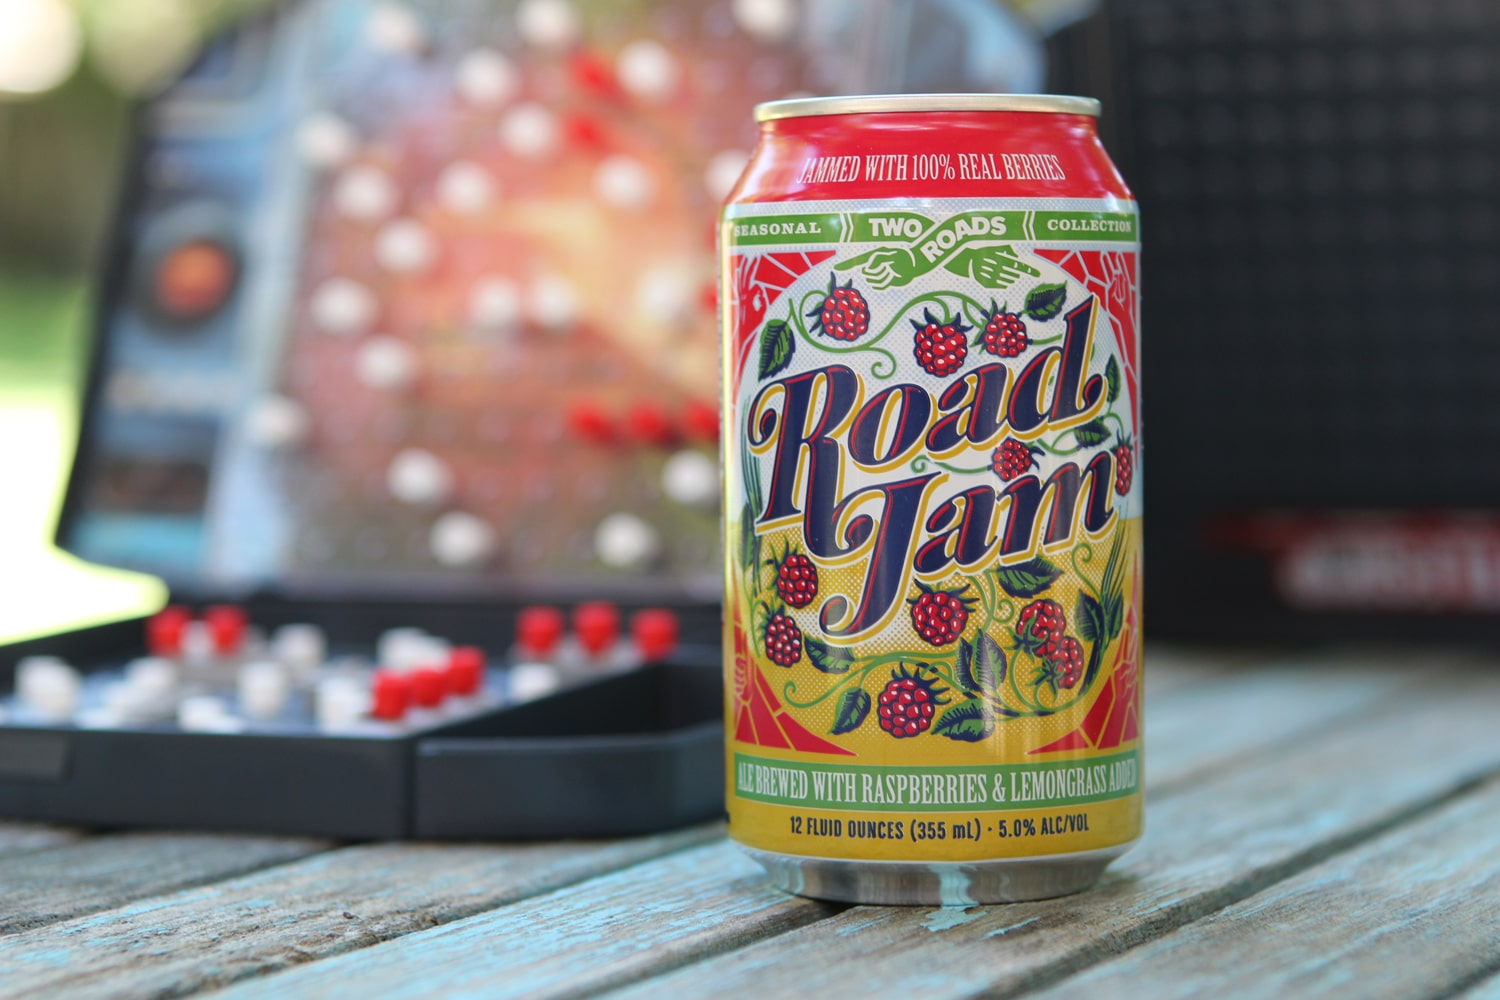 Road Jam summer raspberry beer from Two Roads Brewing.